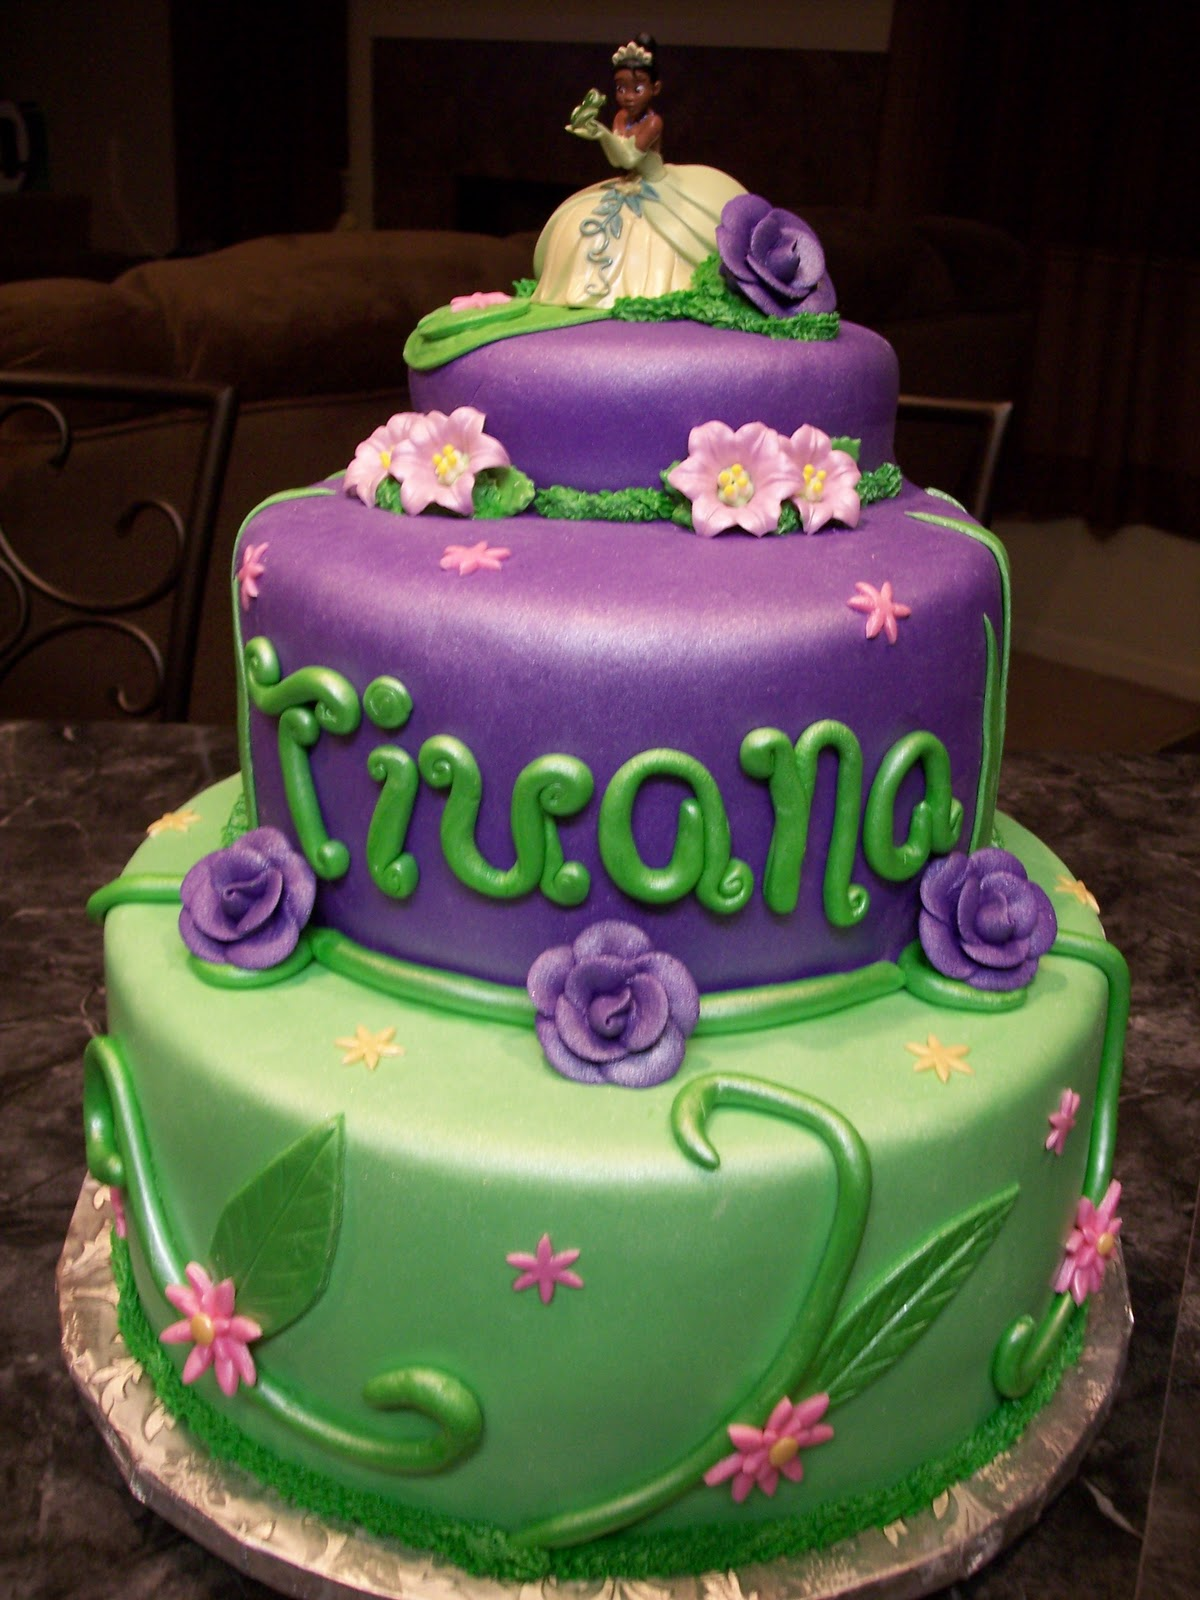 Princess Tiana Cake Pictures : MyMoniCakes: Princess and the Frog / Princess Tiana Cake